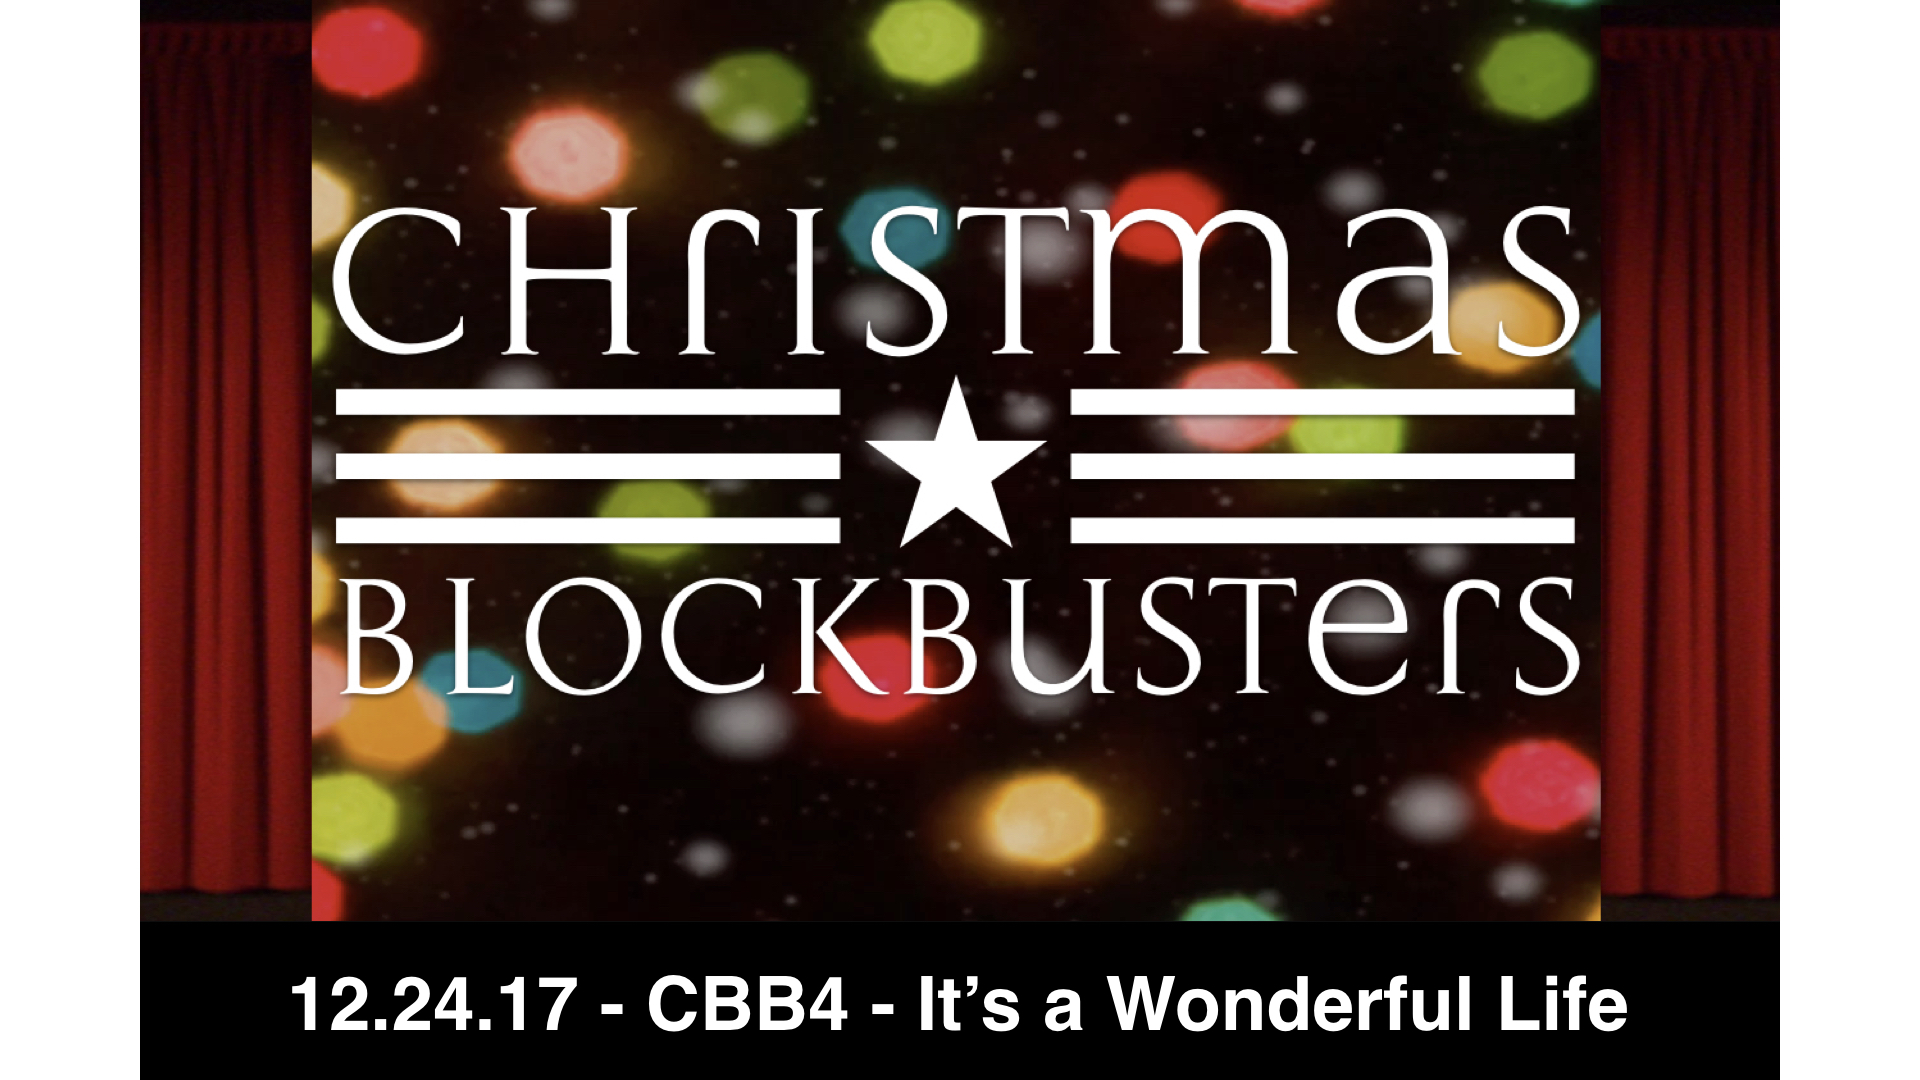 12.24.17 Christmas Blockbusters 4 - It's a Wonderful Life